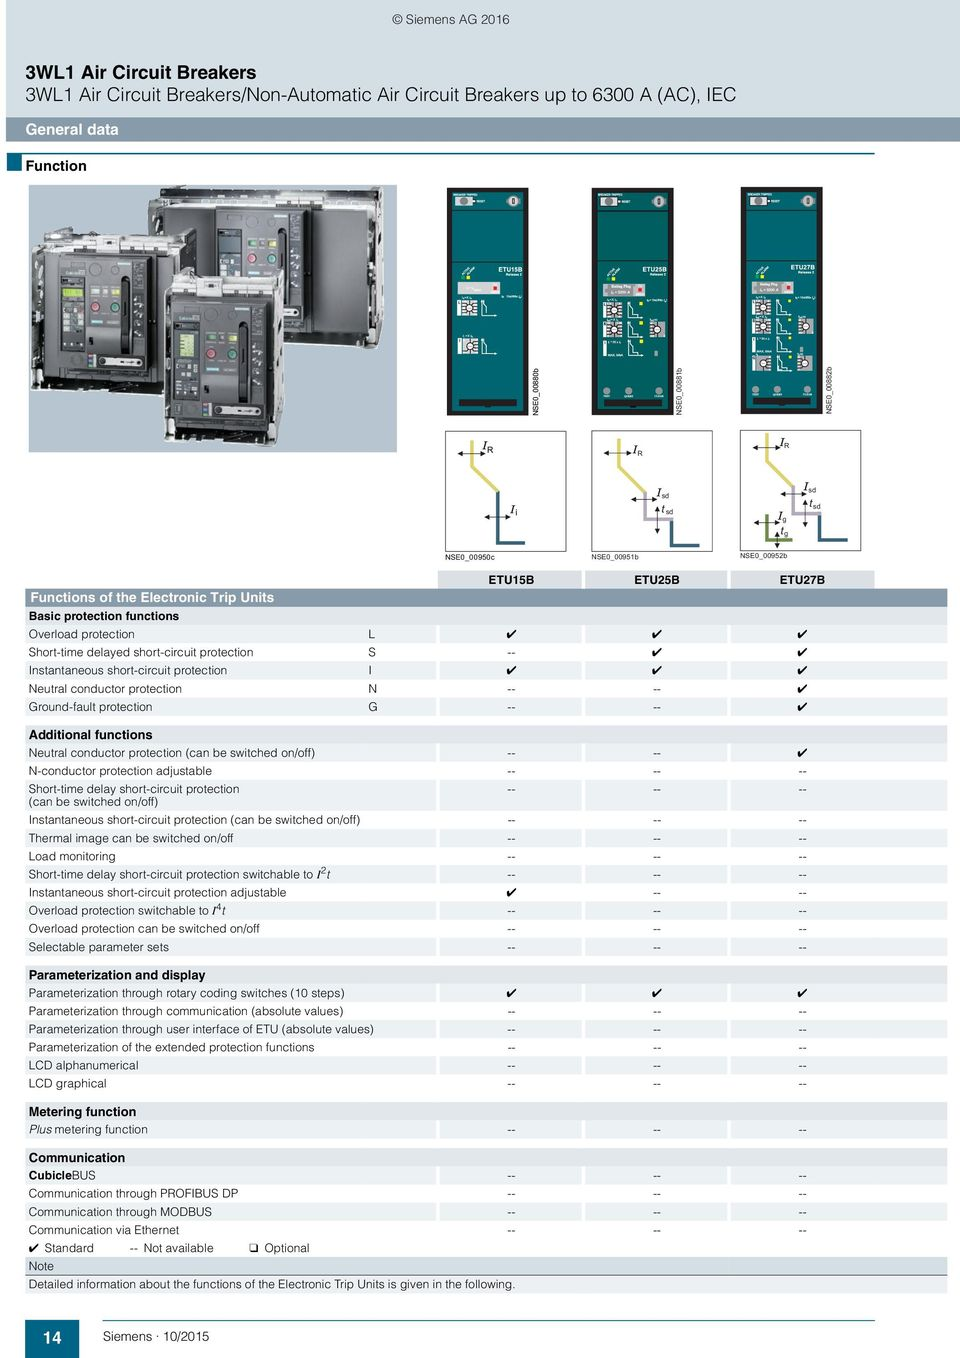 Siemens Ag Wl1 Air Circuit Breakers Sentron Configuration Edition Arcfault Prevent Fires Absolute Electric Short Protection I Neutral Conductor N Ground Fault G Additional Functions